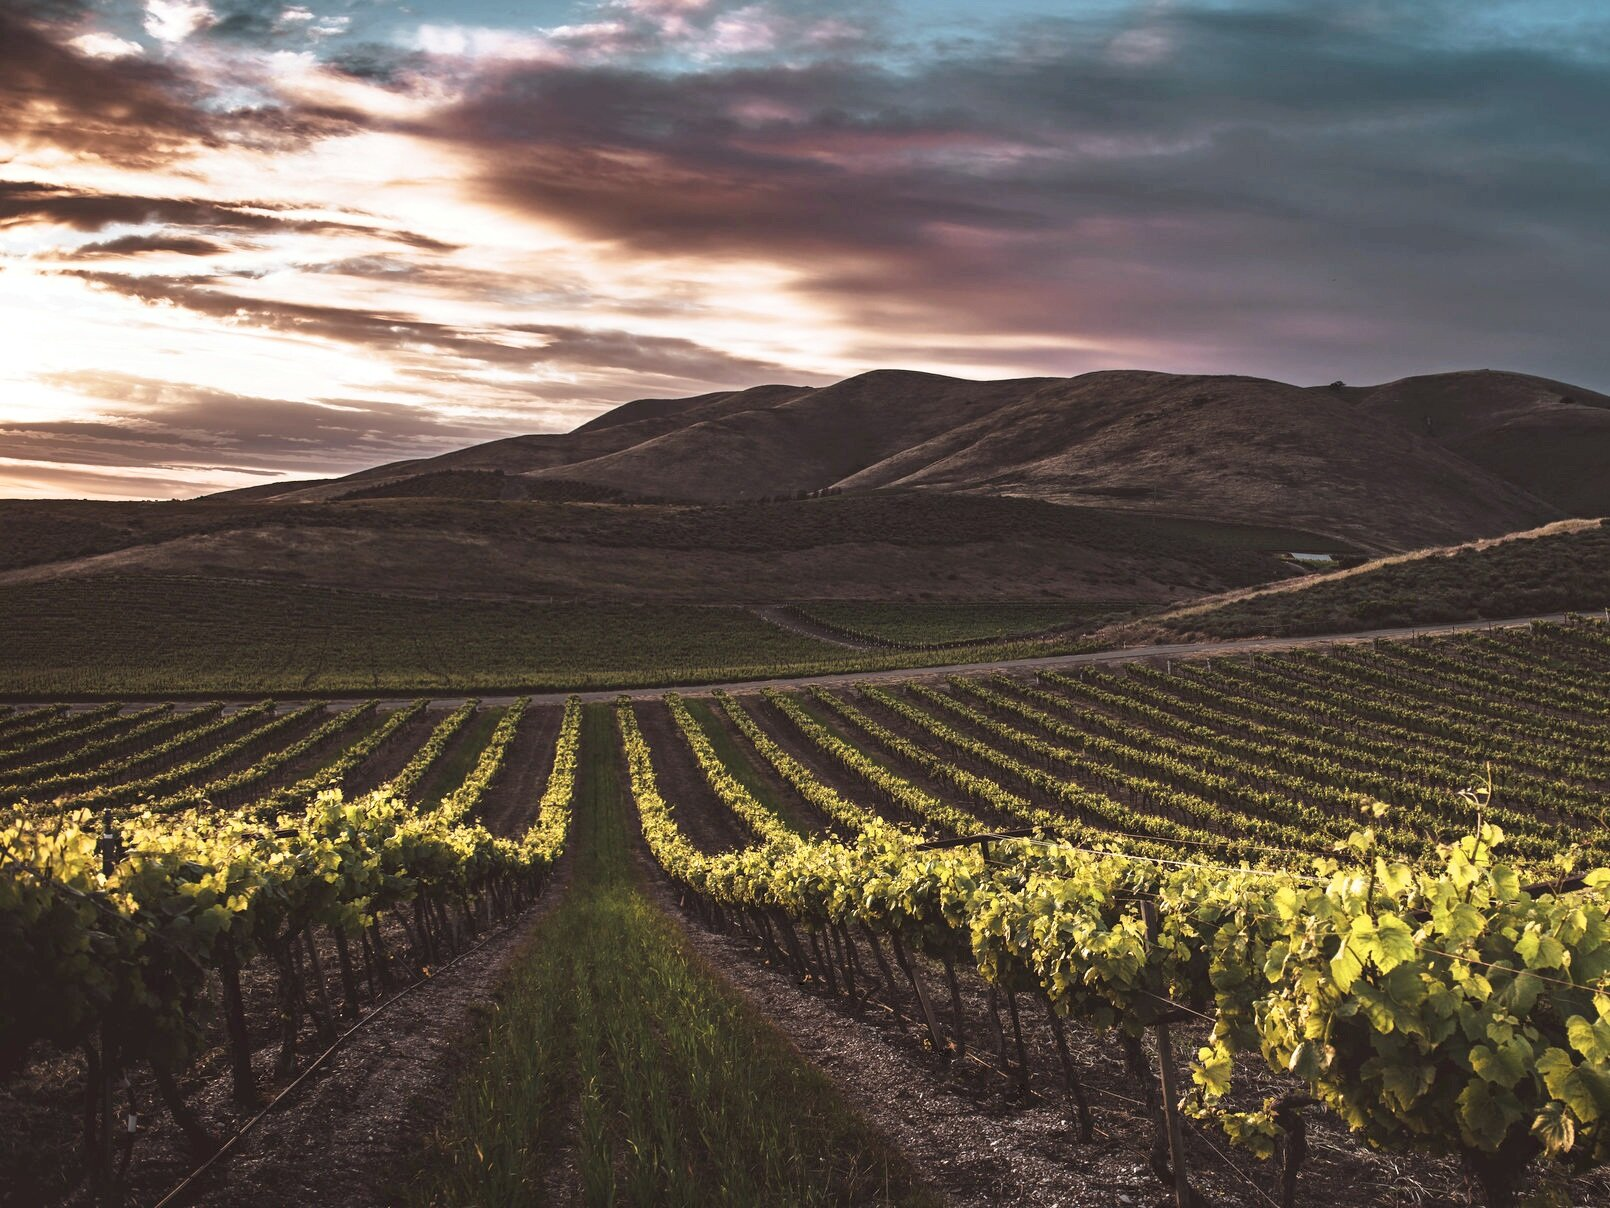 Paulo Pinto: Founding Member's view on Fine Wine Investment